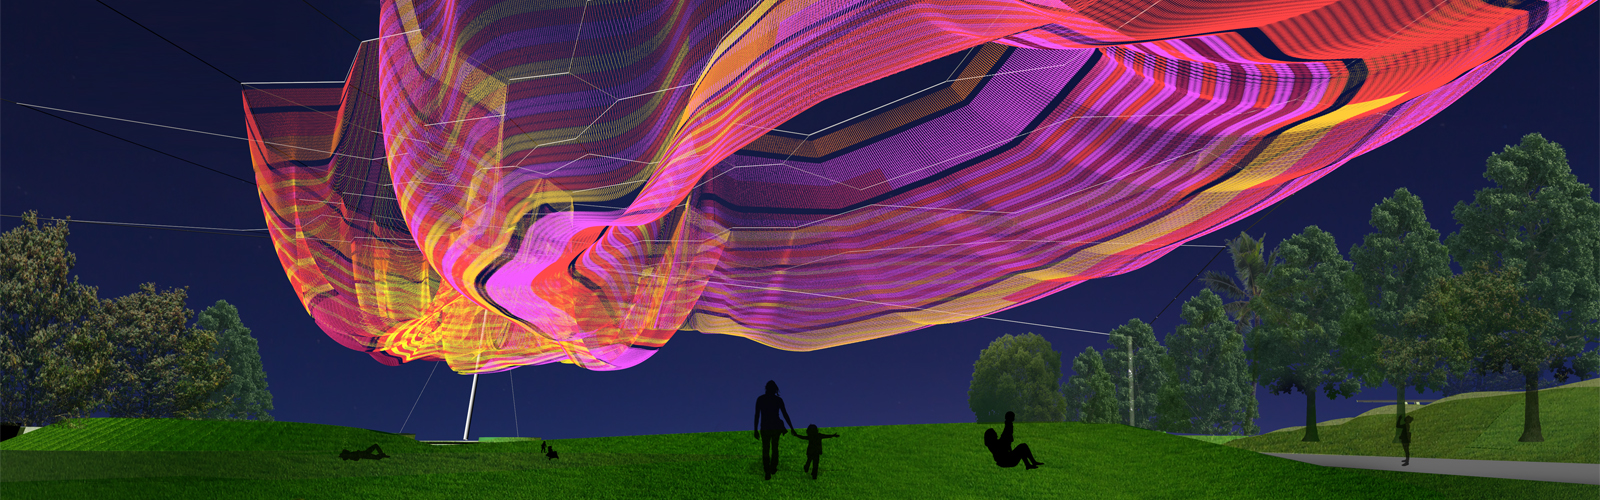 A rendering of Janet Echelman's Bending Arc for the new St. Petersburg Pier.  <span class='image-credits'>Courtesy of Studio Echelman</span>